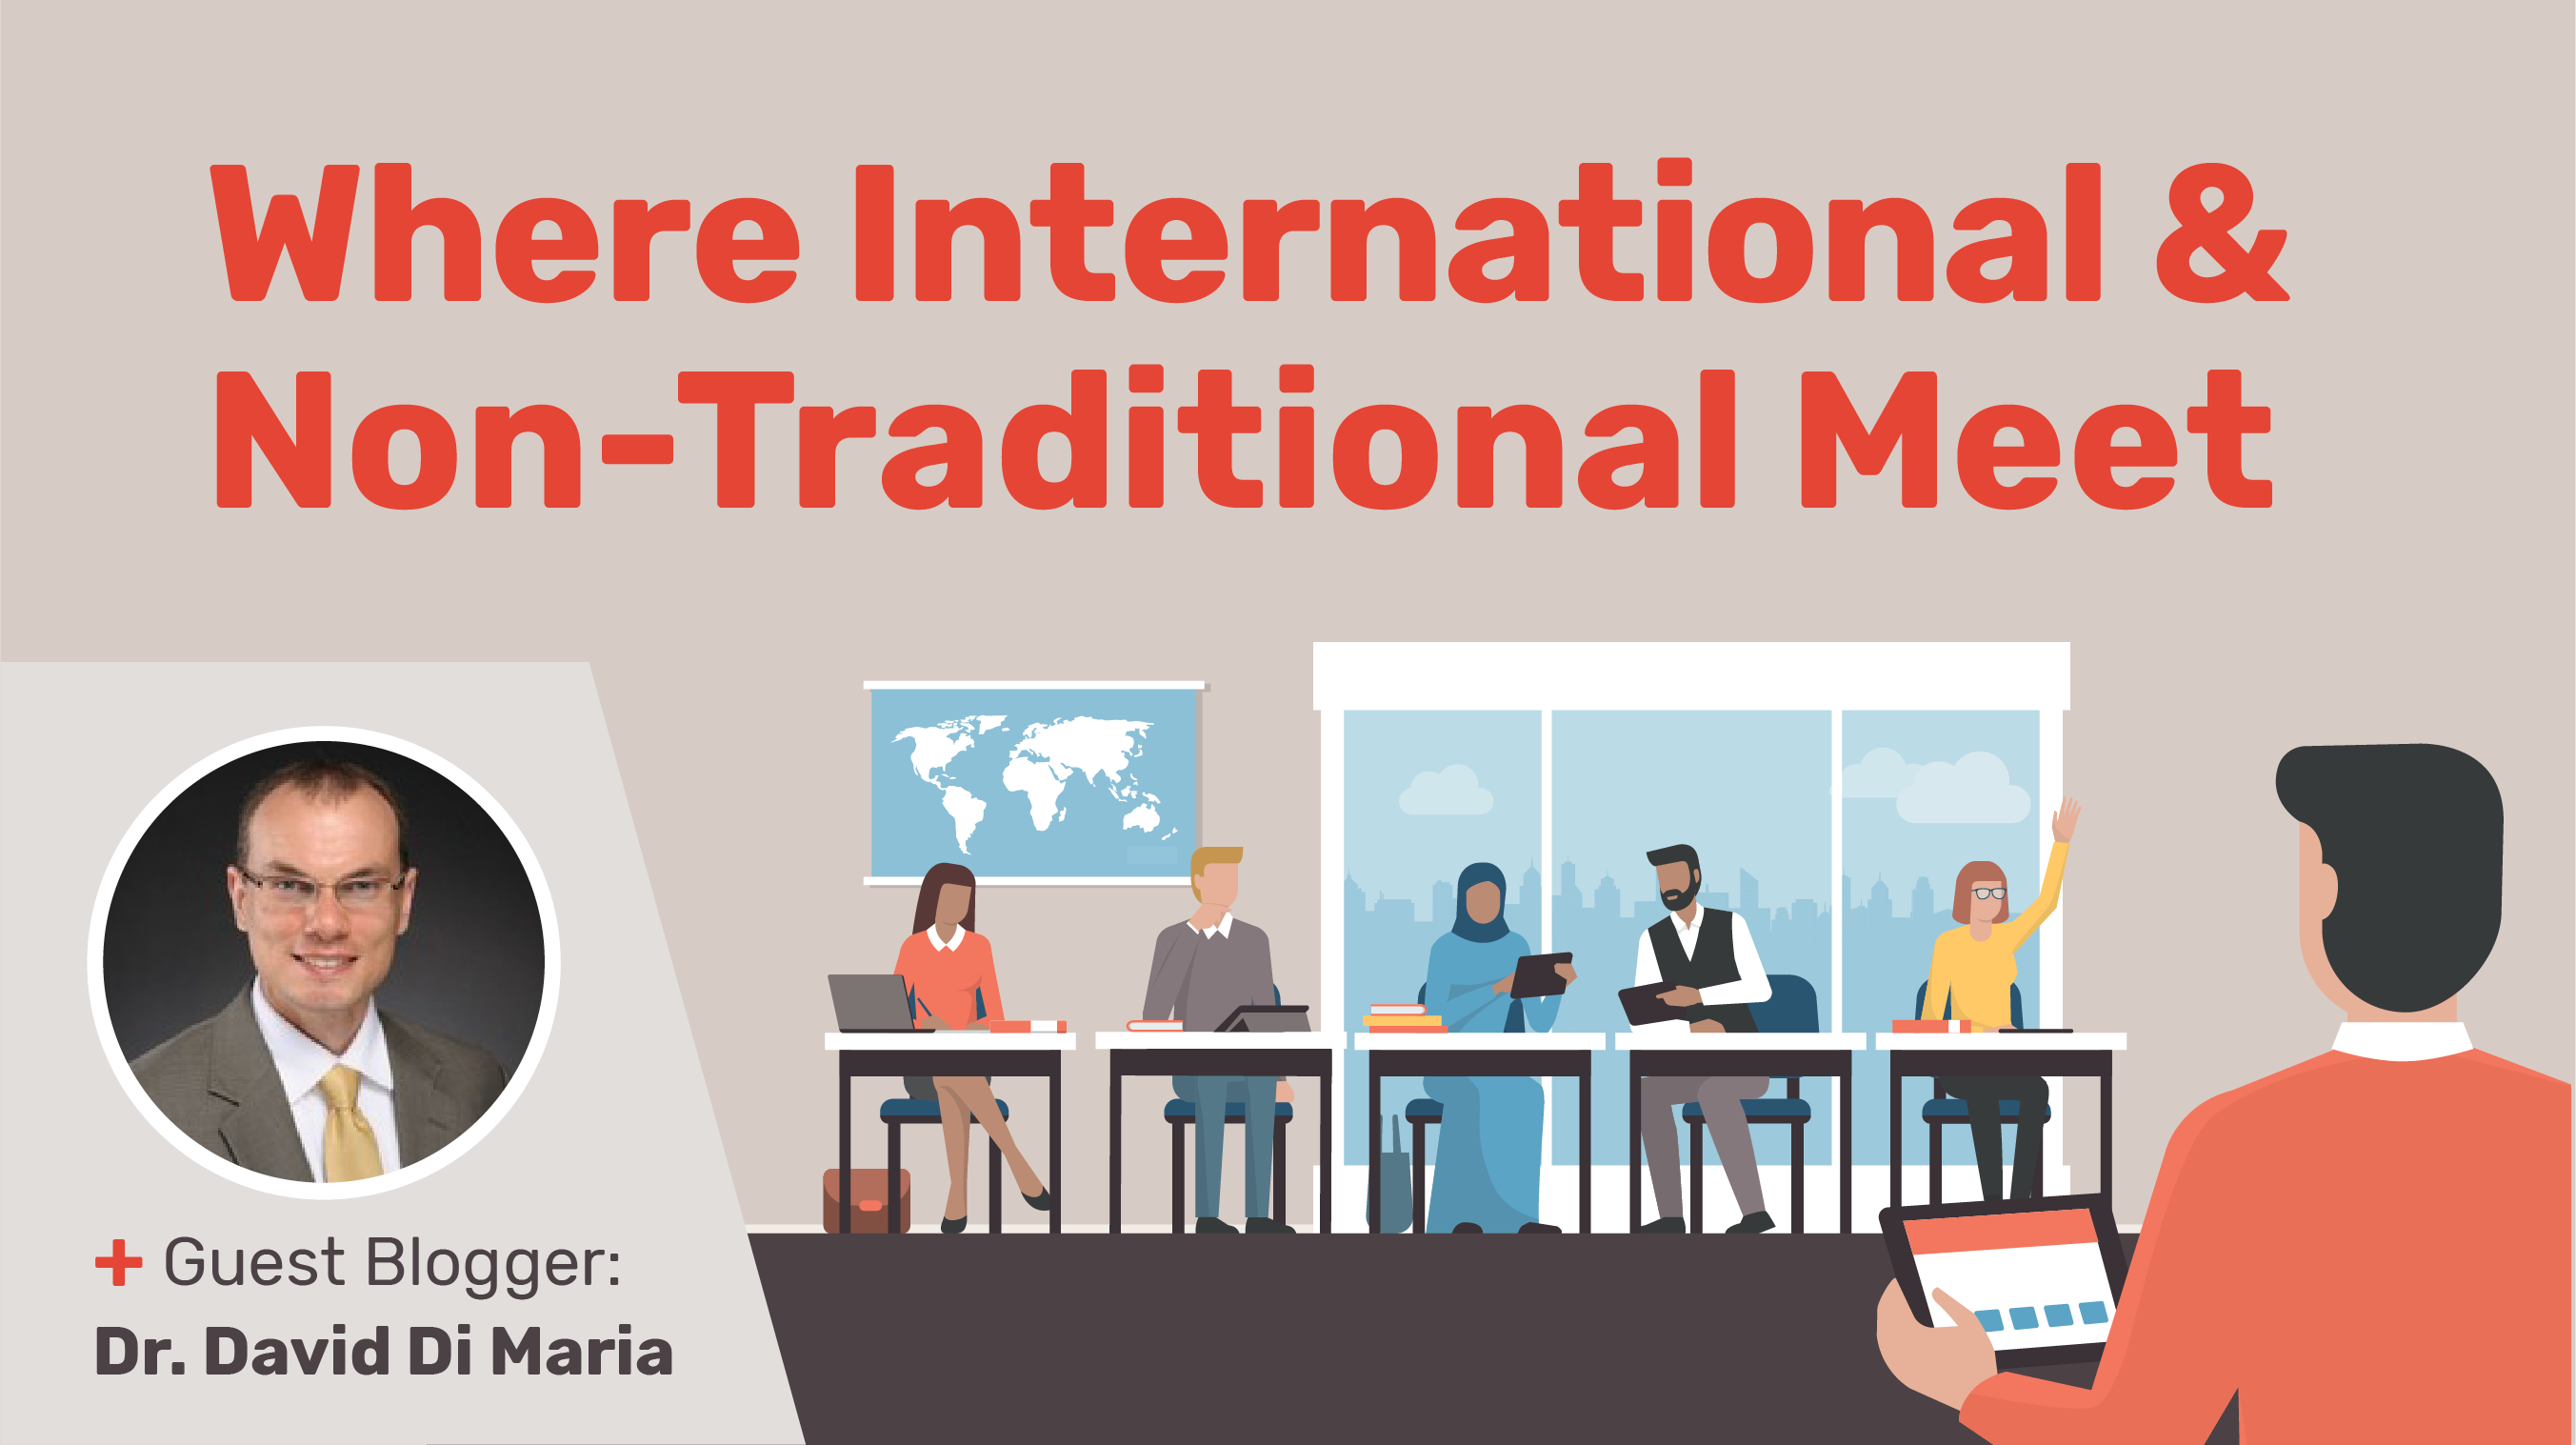 Where International & Non-Traditional Meet